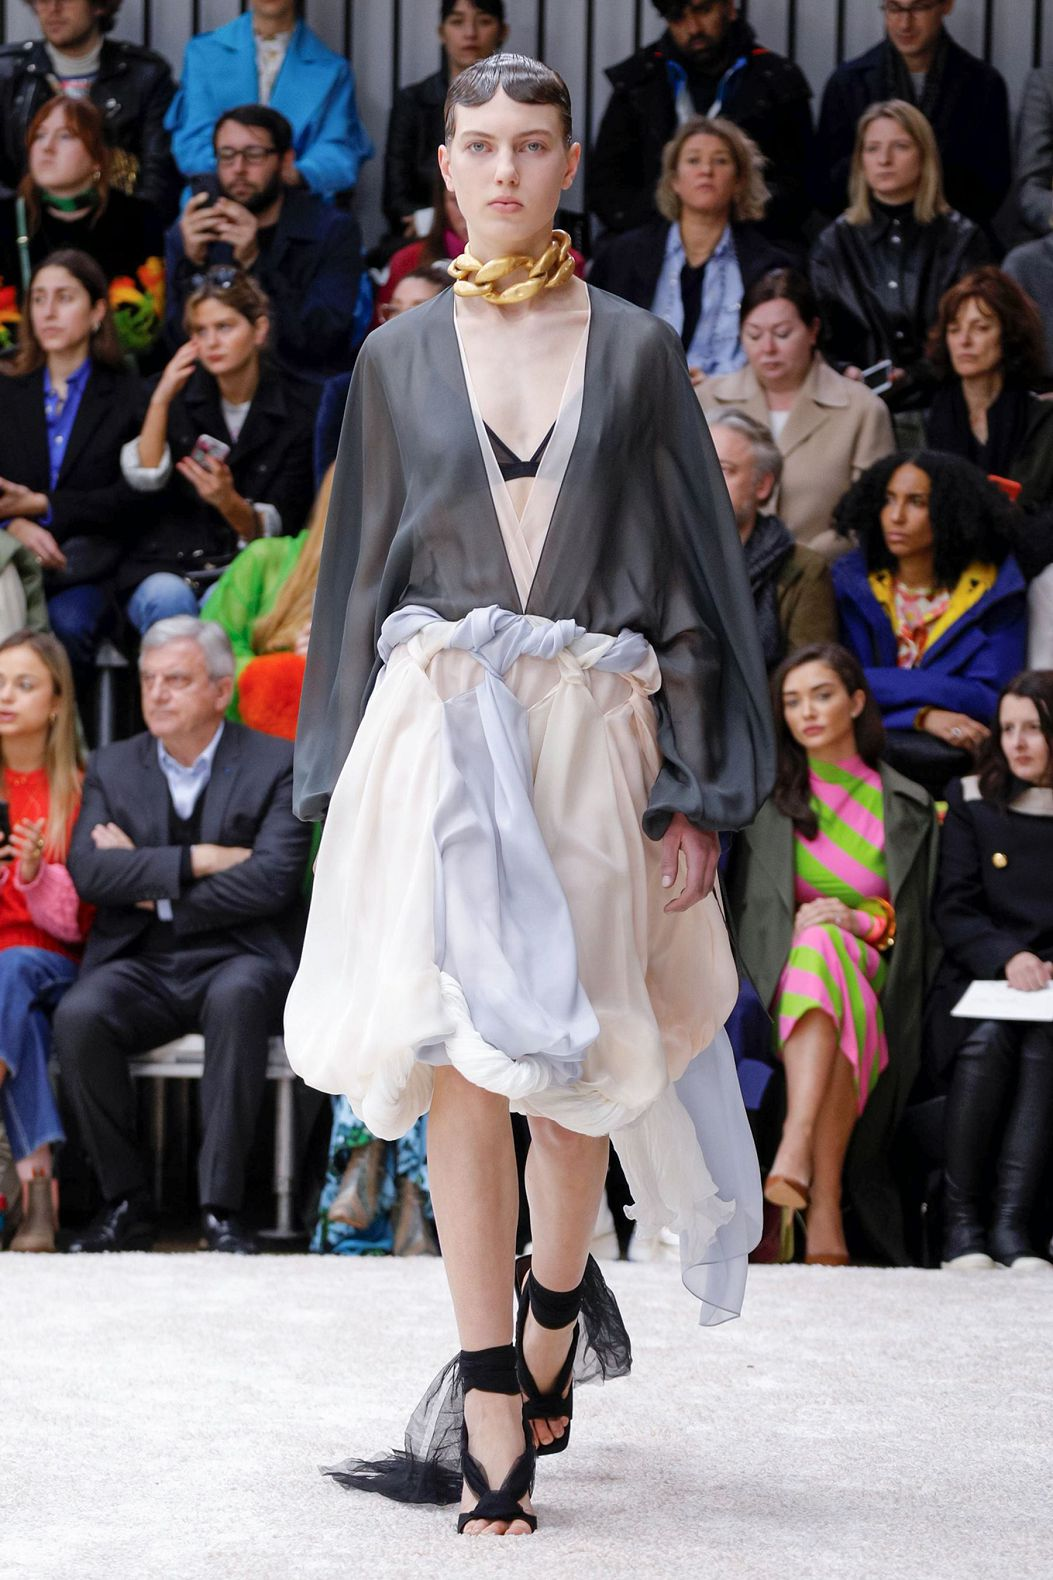 golden neckband and dreess with neckline by JW Anderson